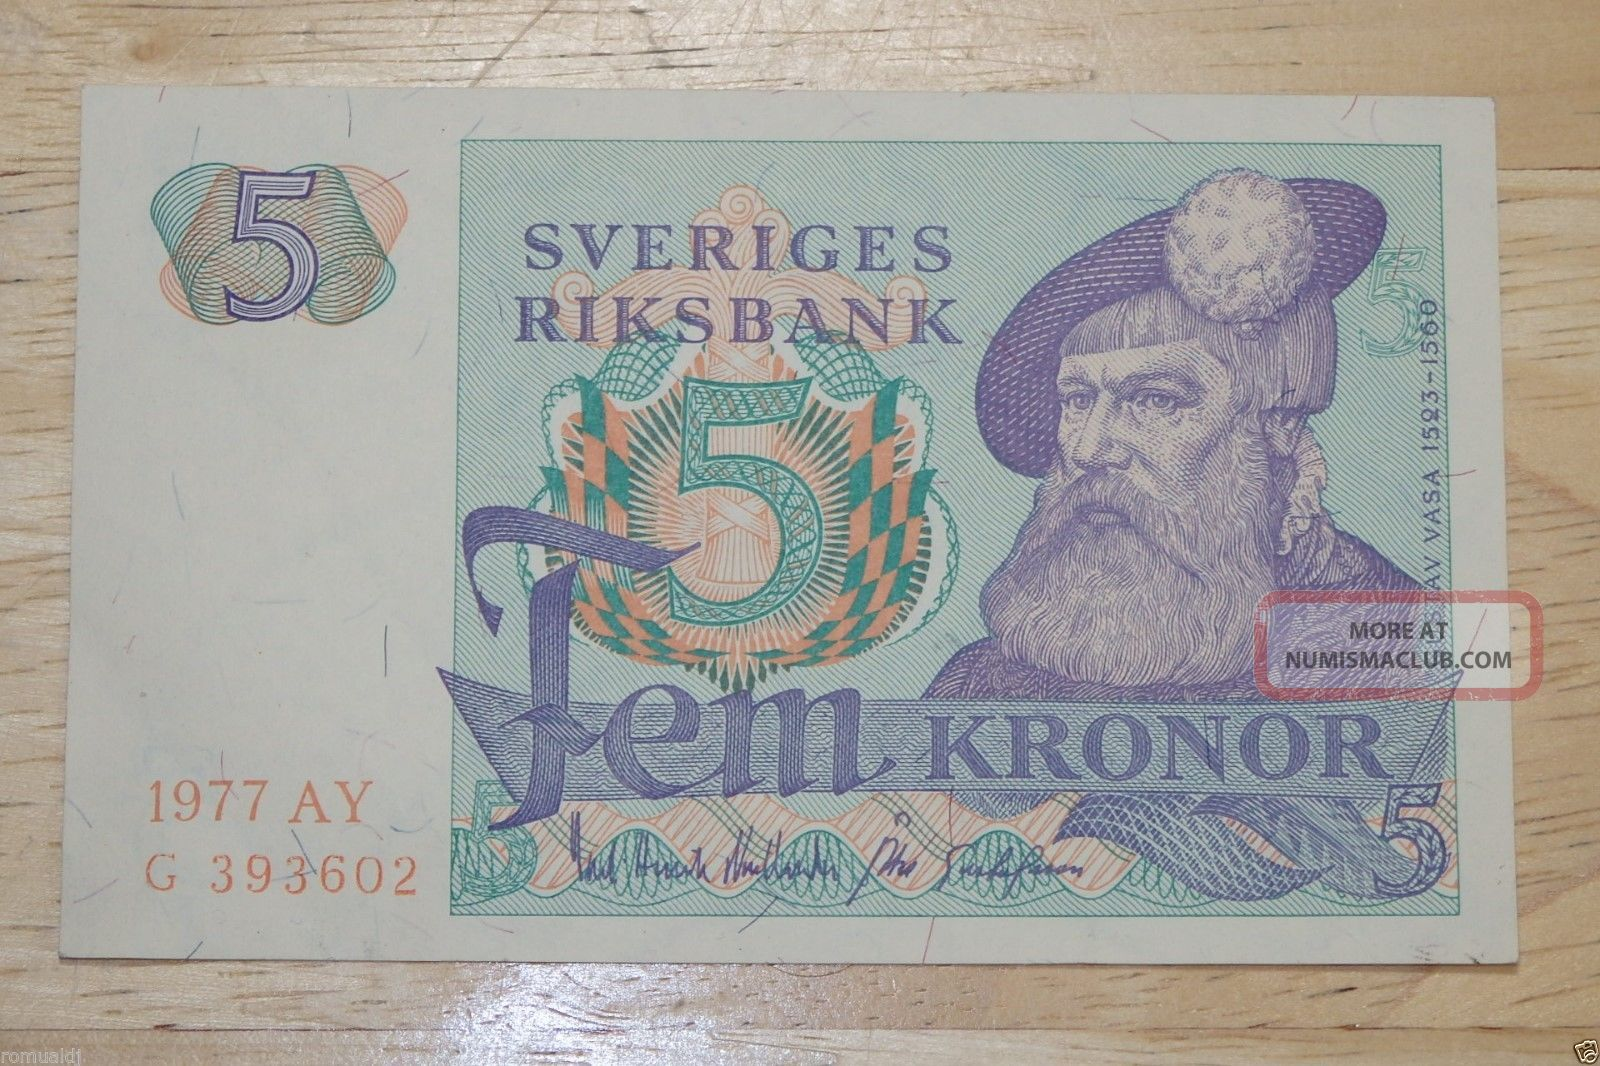 5 Kronor,  1977 Vintage Banknote.  & Uncirculated. Europe photo